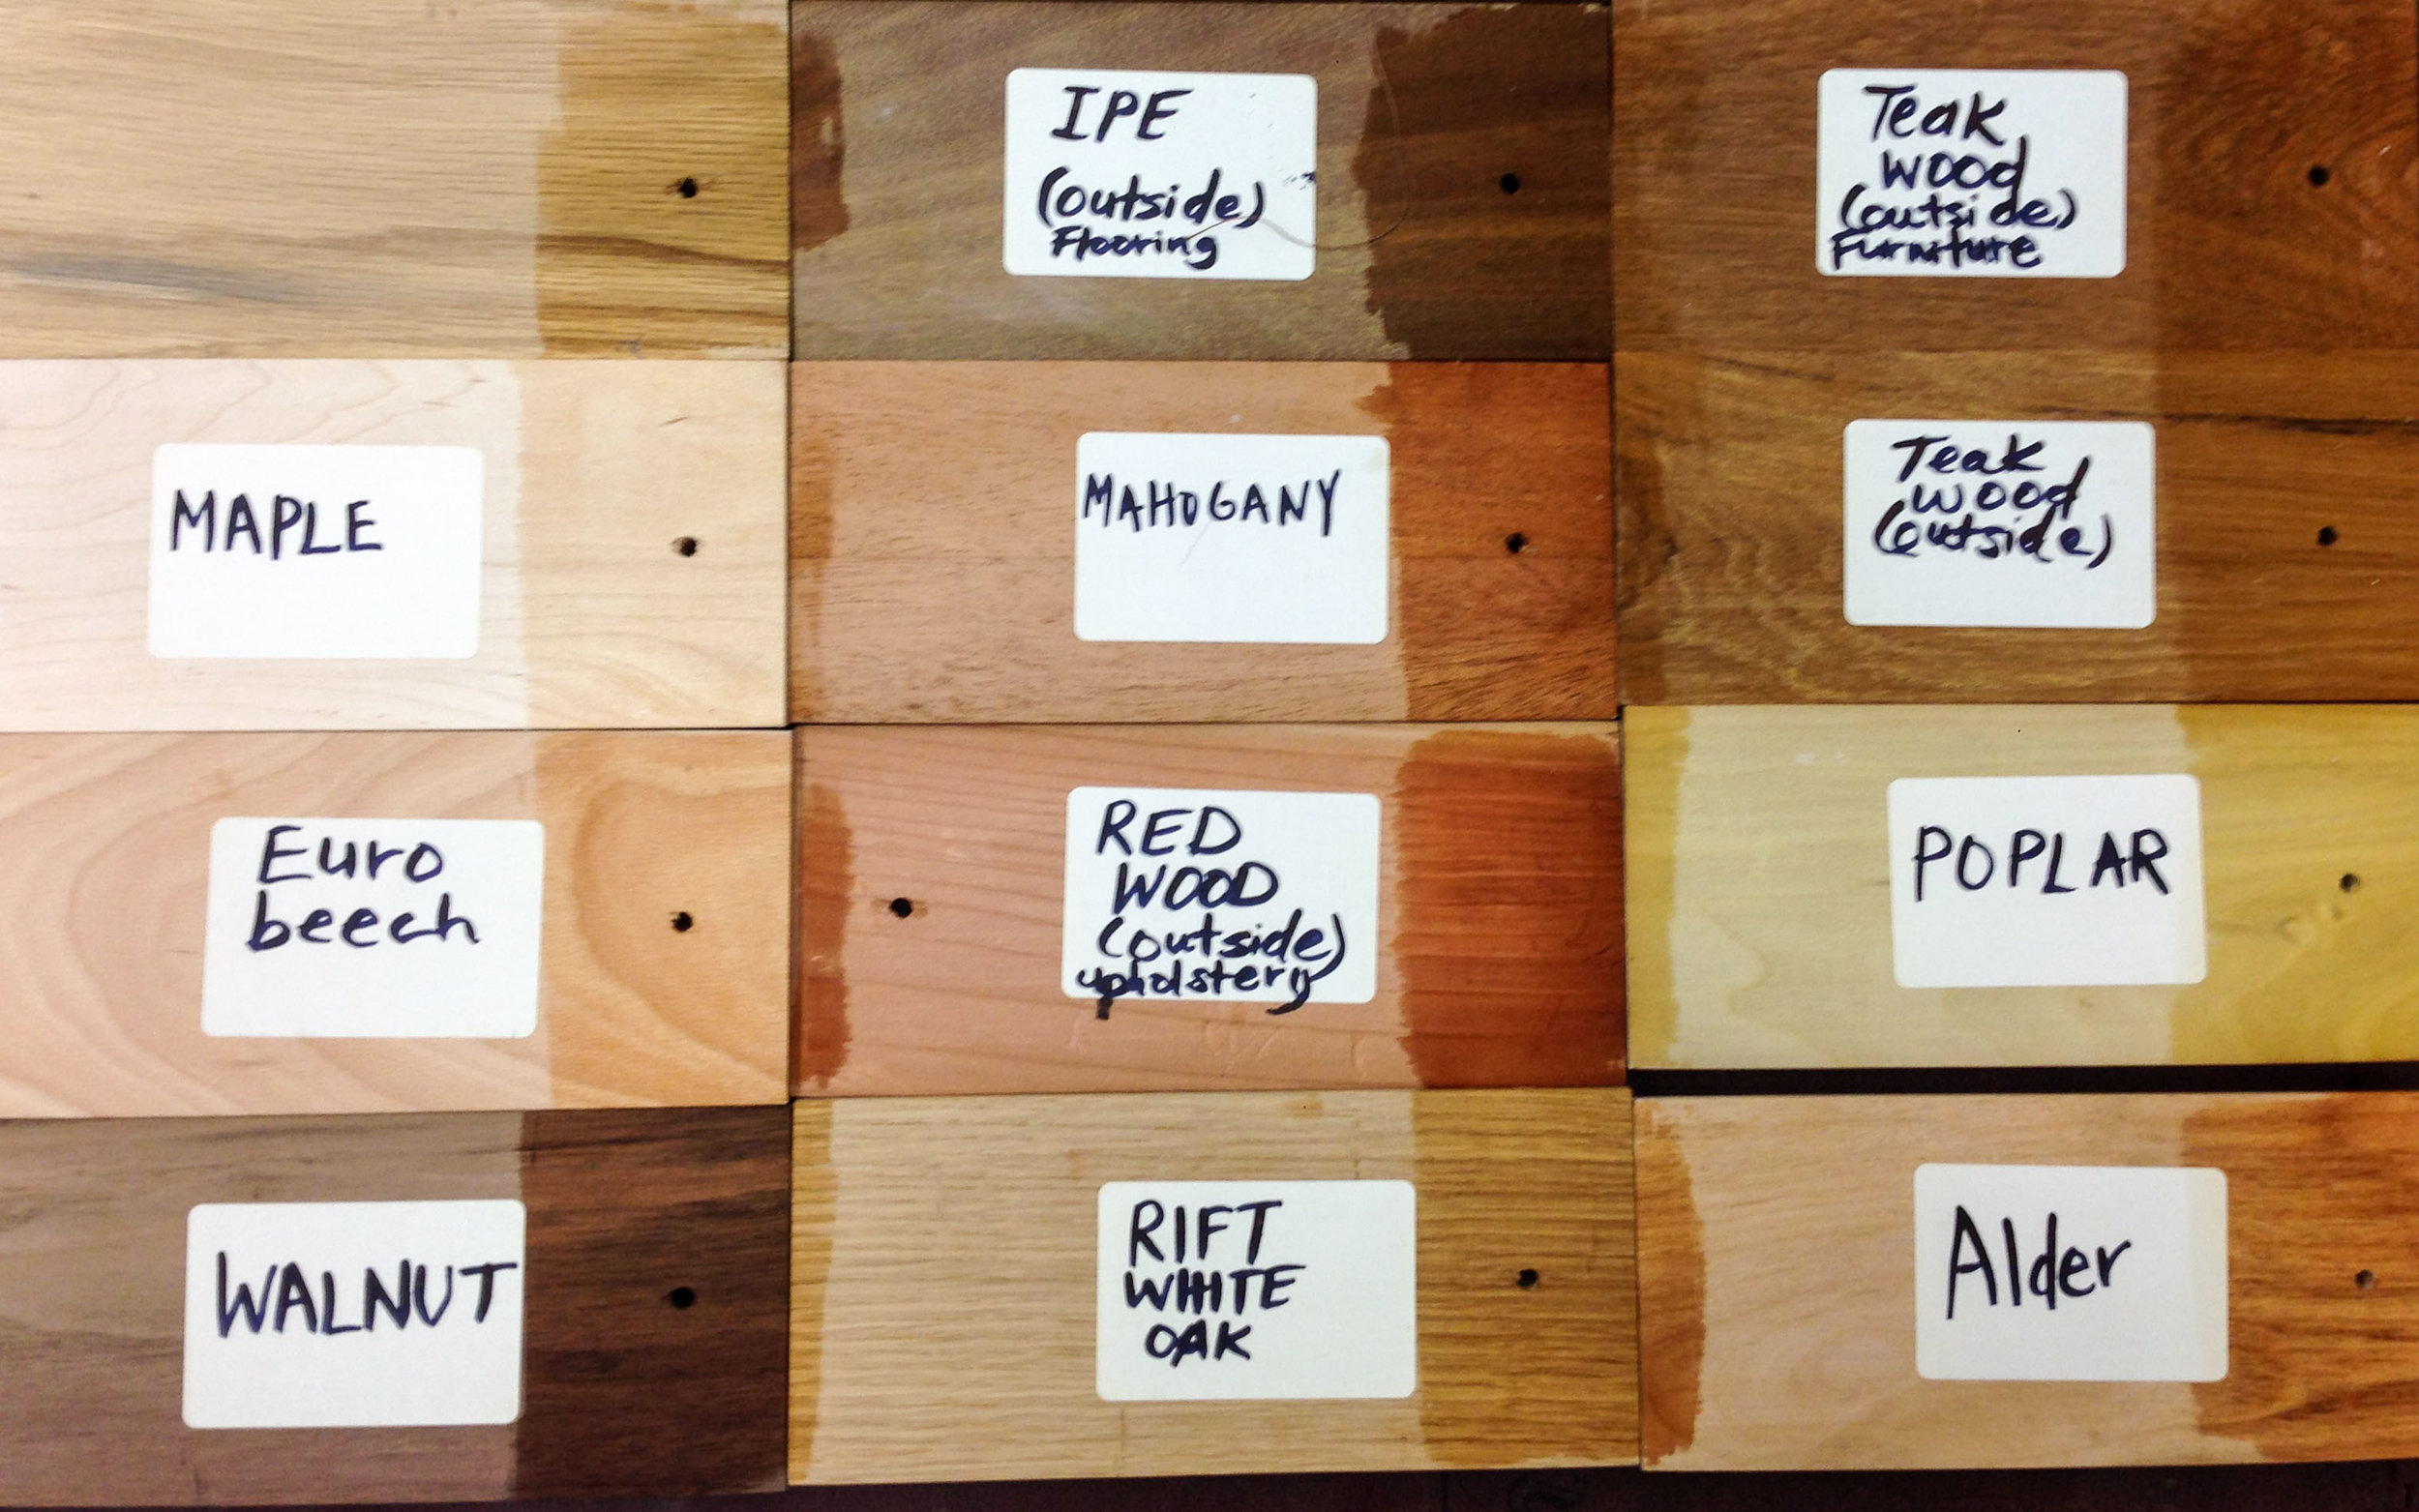 No need for any stains since our custom frames are offered in many hardwoods.  Click through and learn more about our Custom Services.